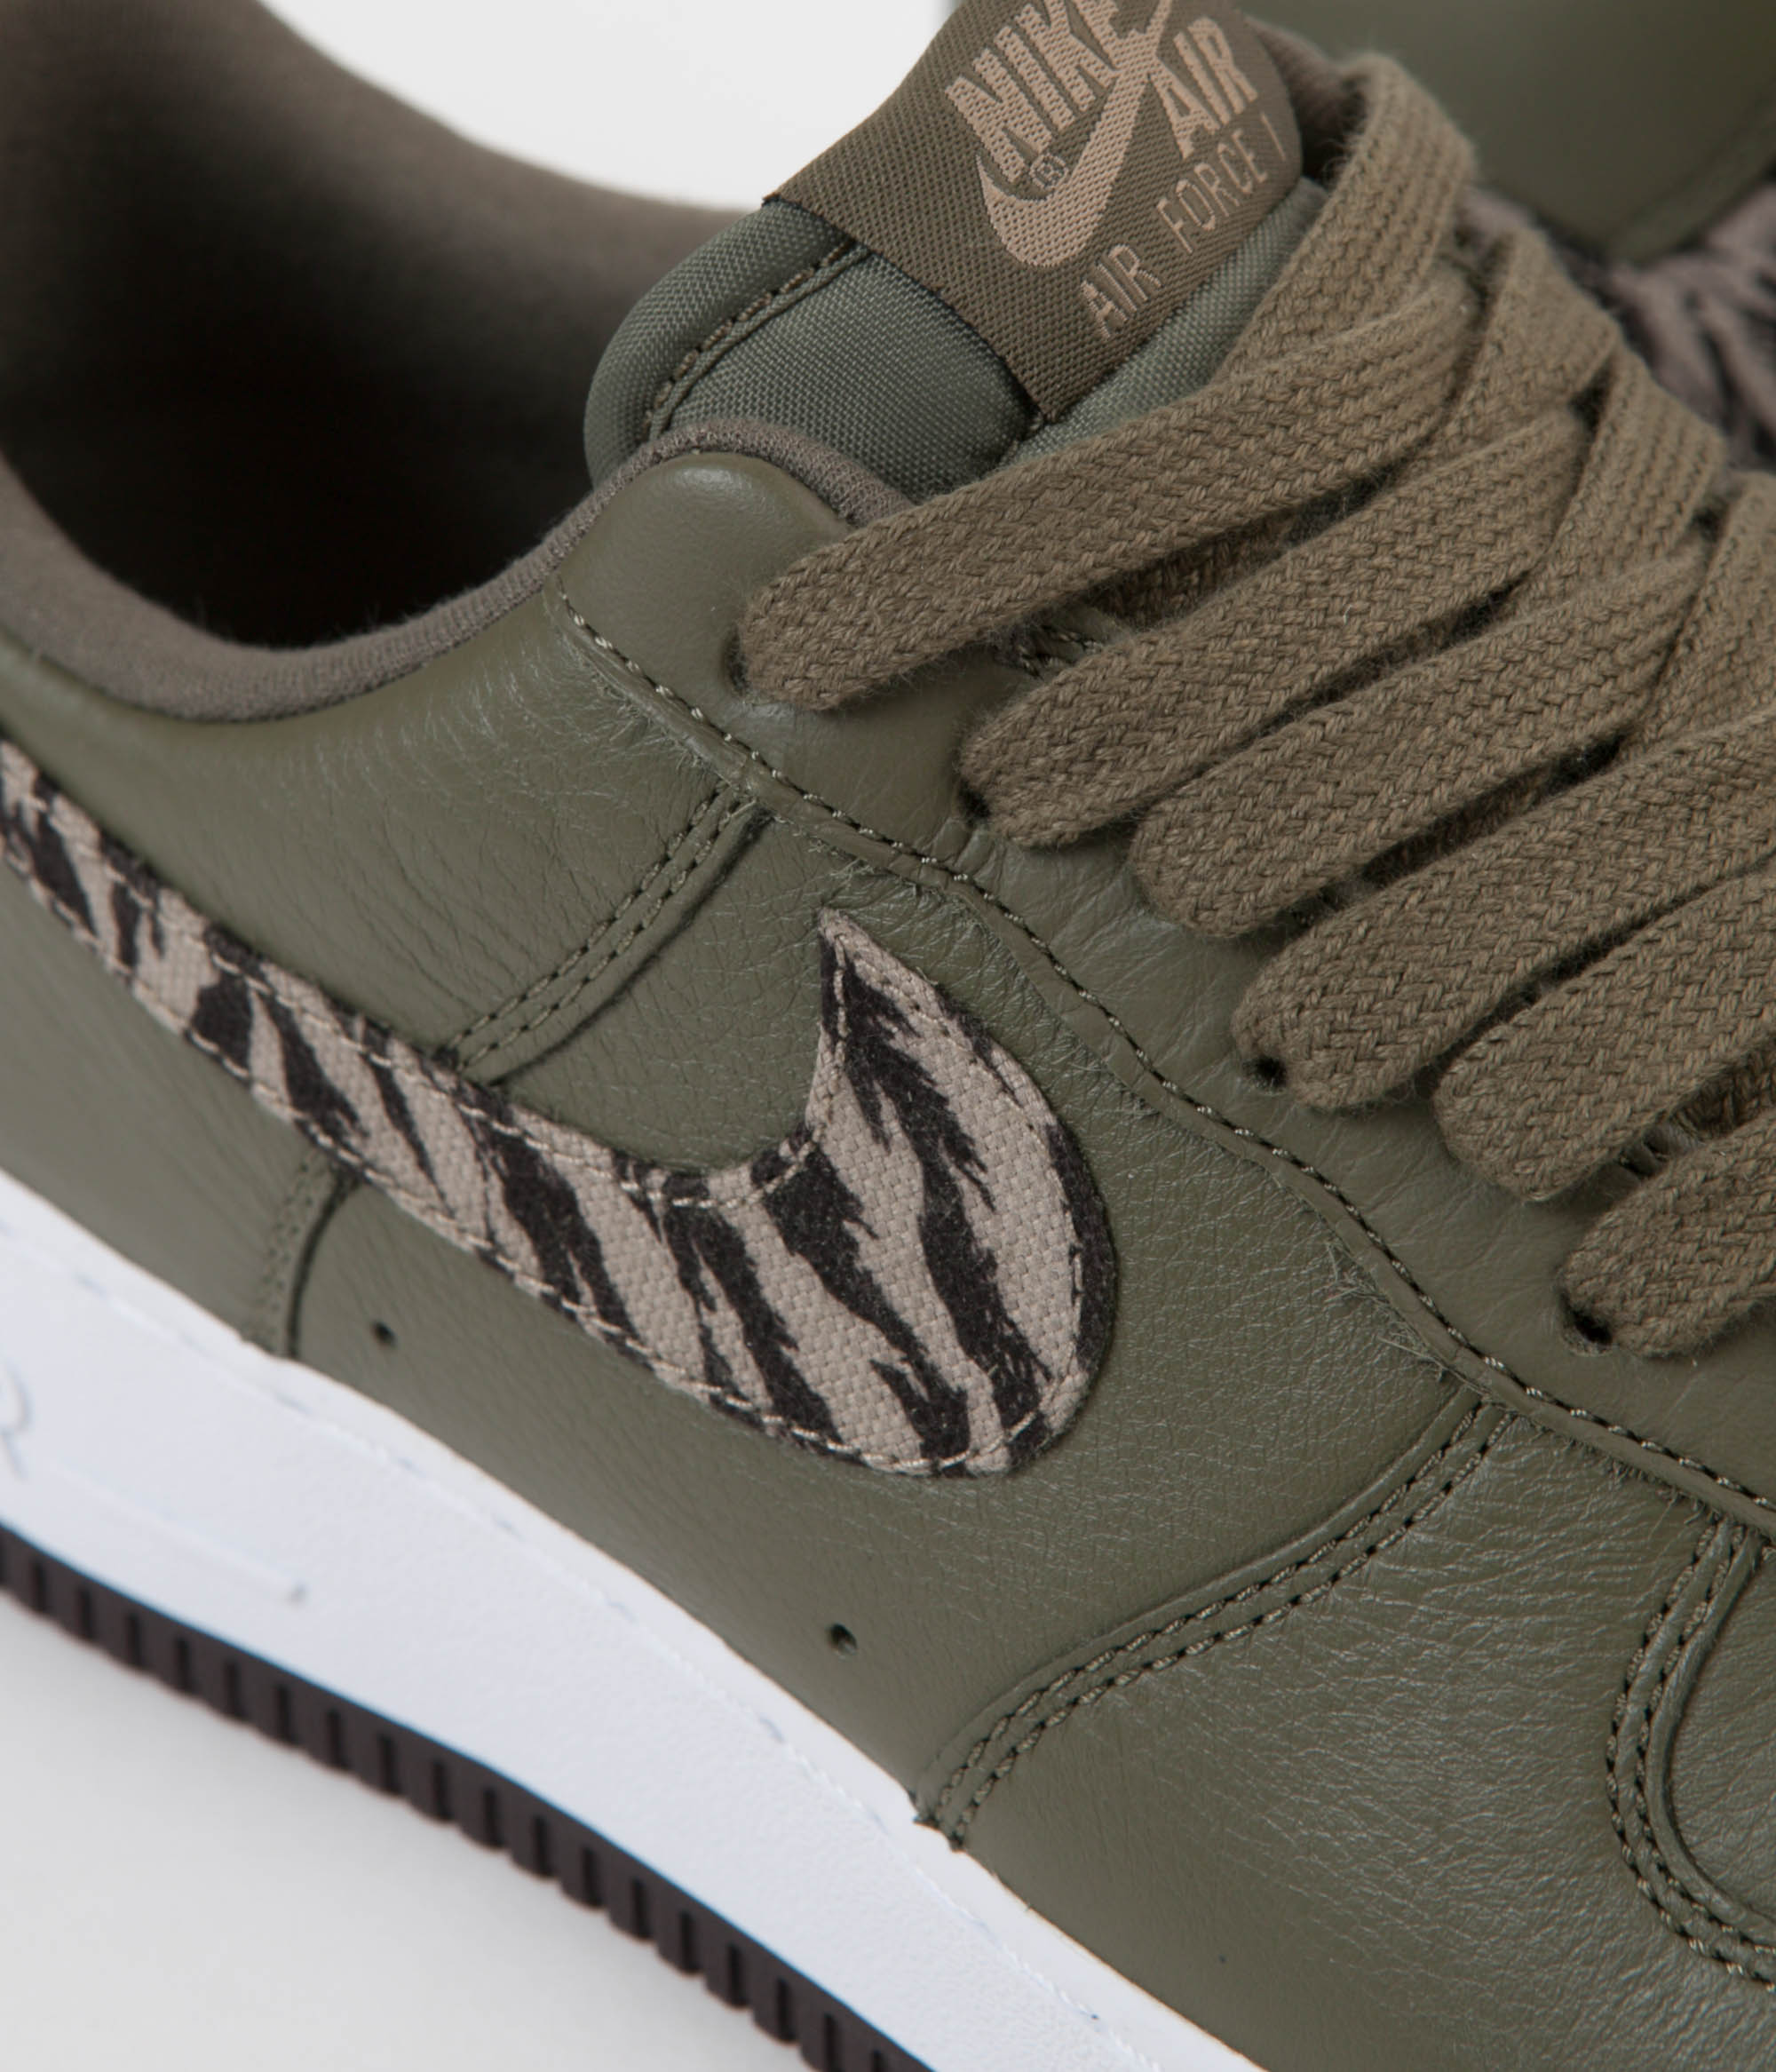 Nike Air Max 1 Premium Olive Canvas Perfect For Fall